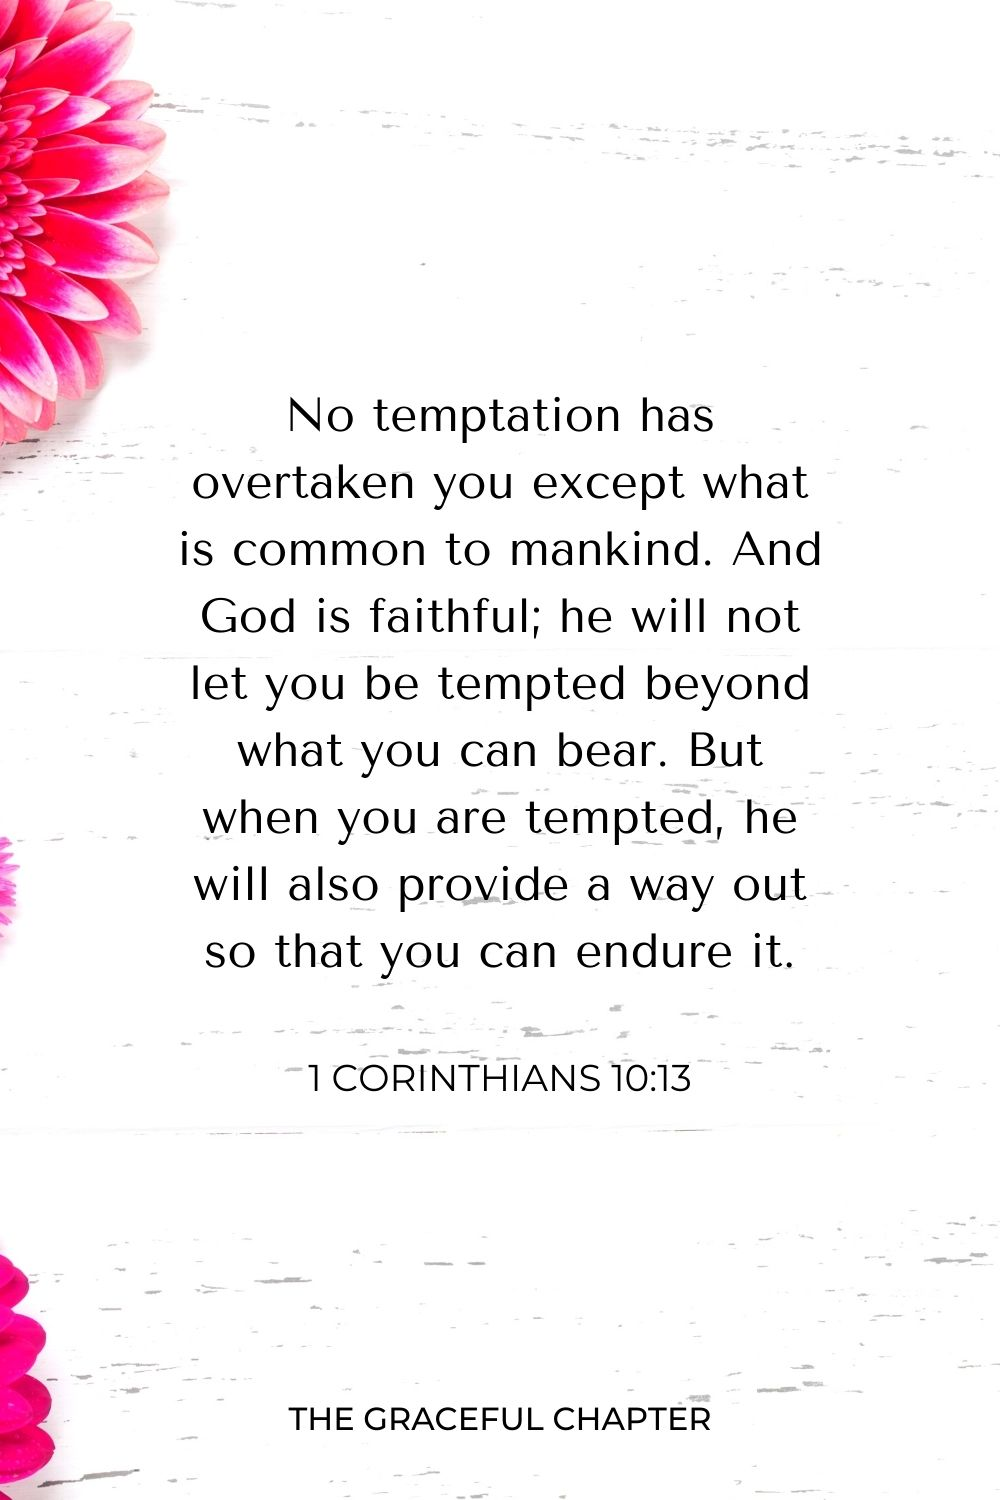 No temptation has overtaken you except what is common to mankind. And God is faithful; he will not let you be tempted beyond what you can bear. But when you are tempted, he will also provide a way out so that you can endure it. 1 Corinthians 10:13